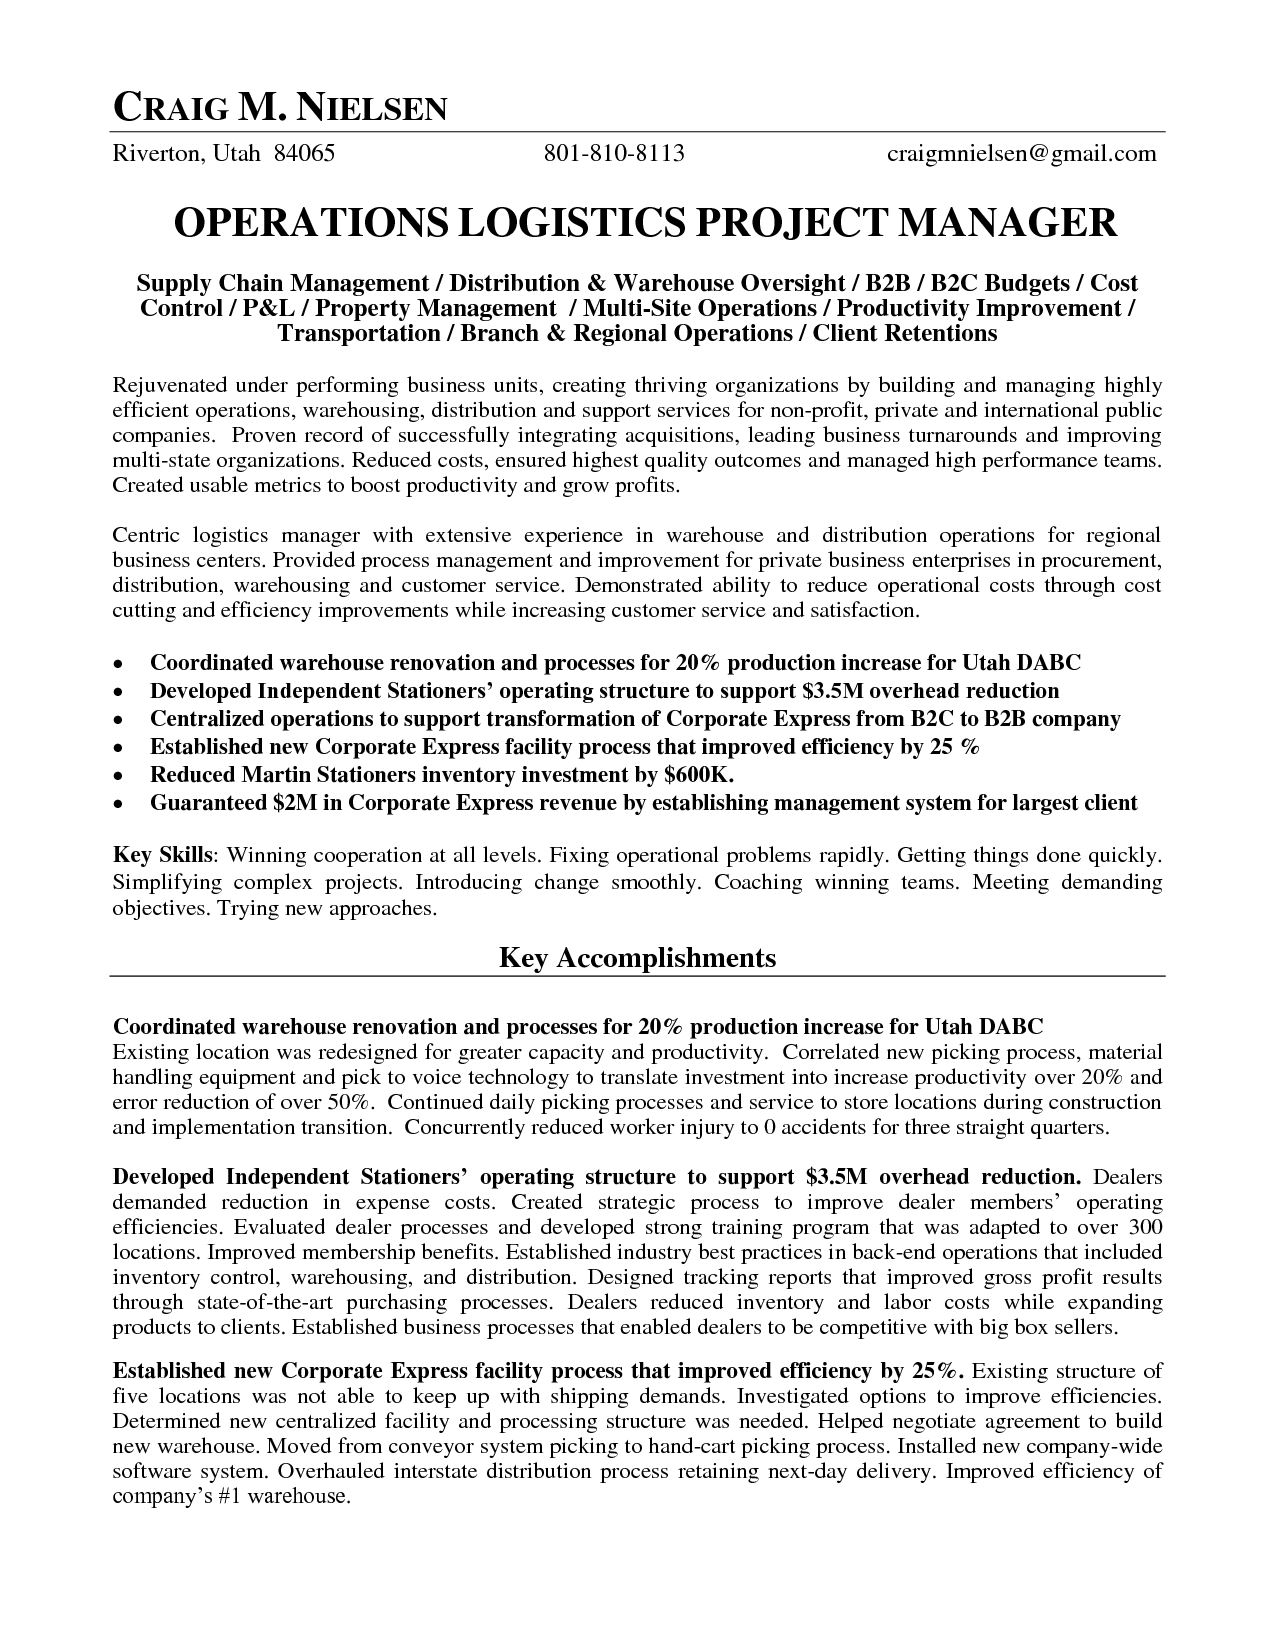 Operation Manager Resume Logistics Operations Manager Resume  Operations Logistics Project